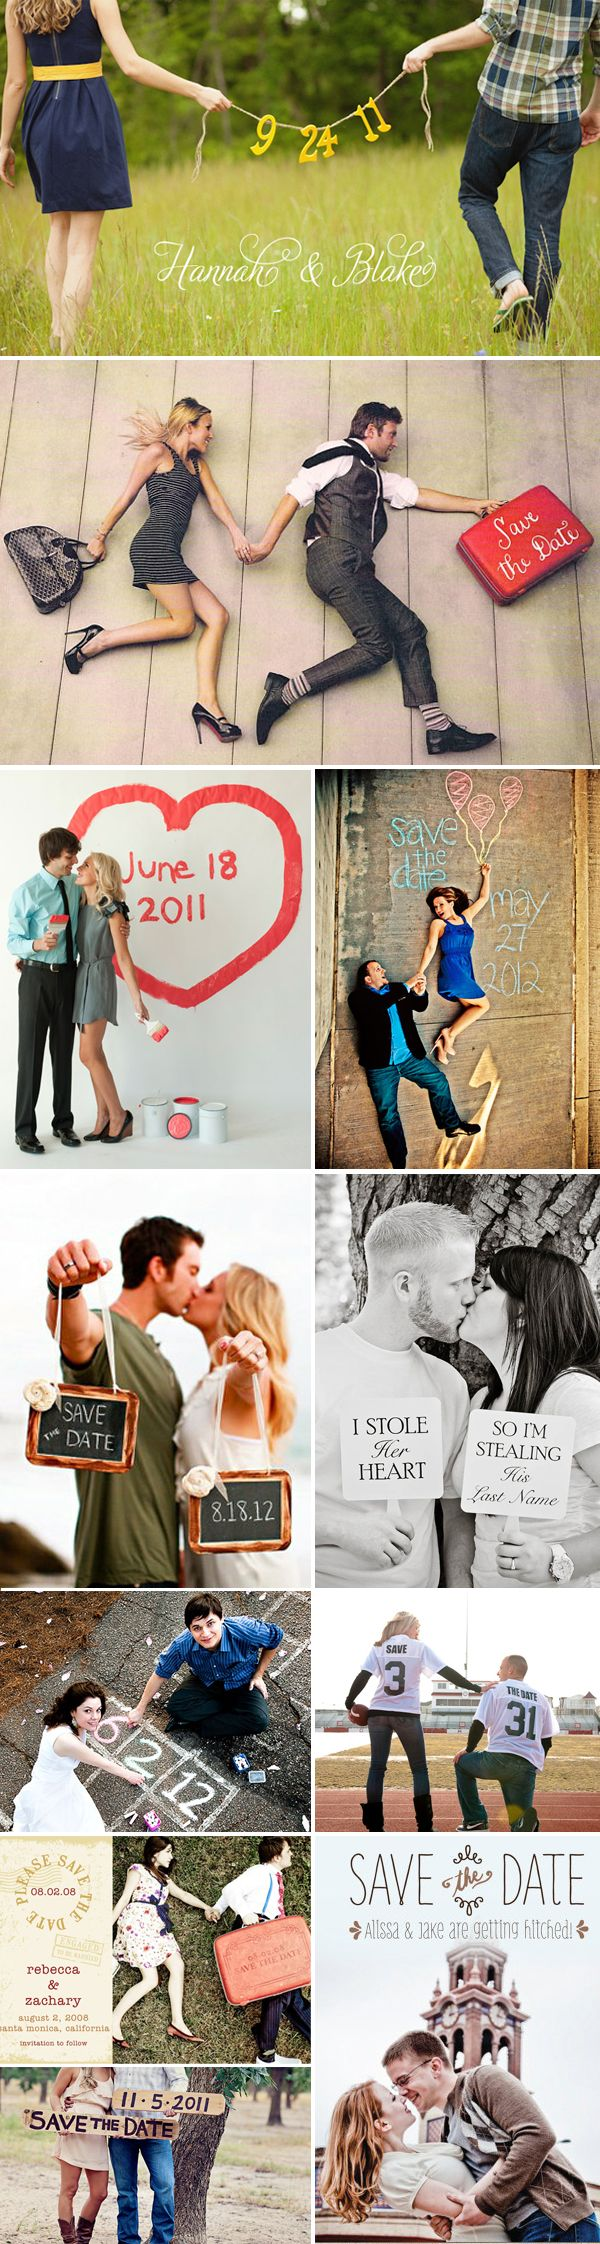 58 save the date ideas!: Pictures Ideas, Save The Date Ideas, Photo Ideas, Engagement Photos, Wedding, Cute Ideas, Engagement Picture, 58 Save, Football Jersey